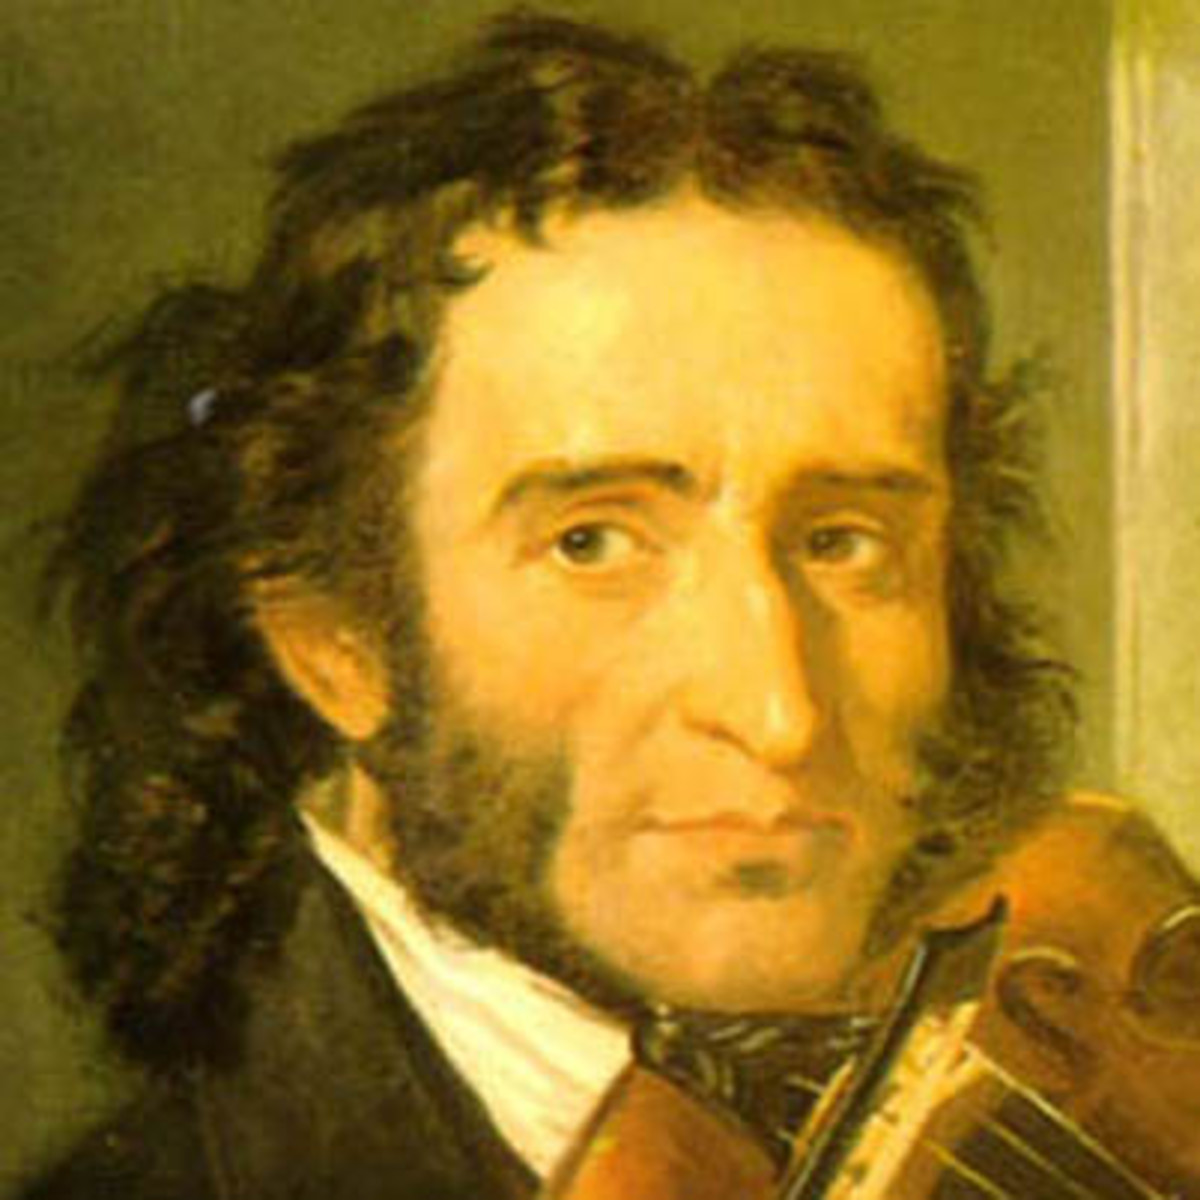 Caption: Nicolo Paganini